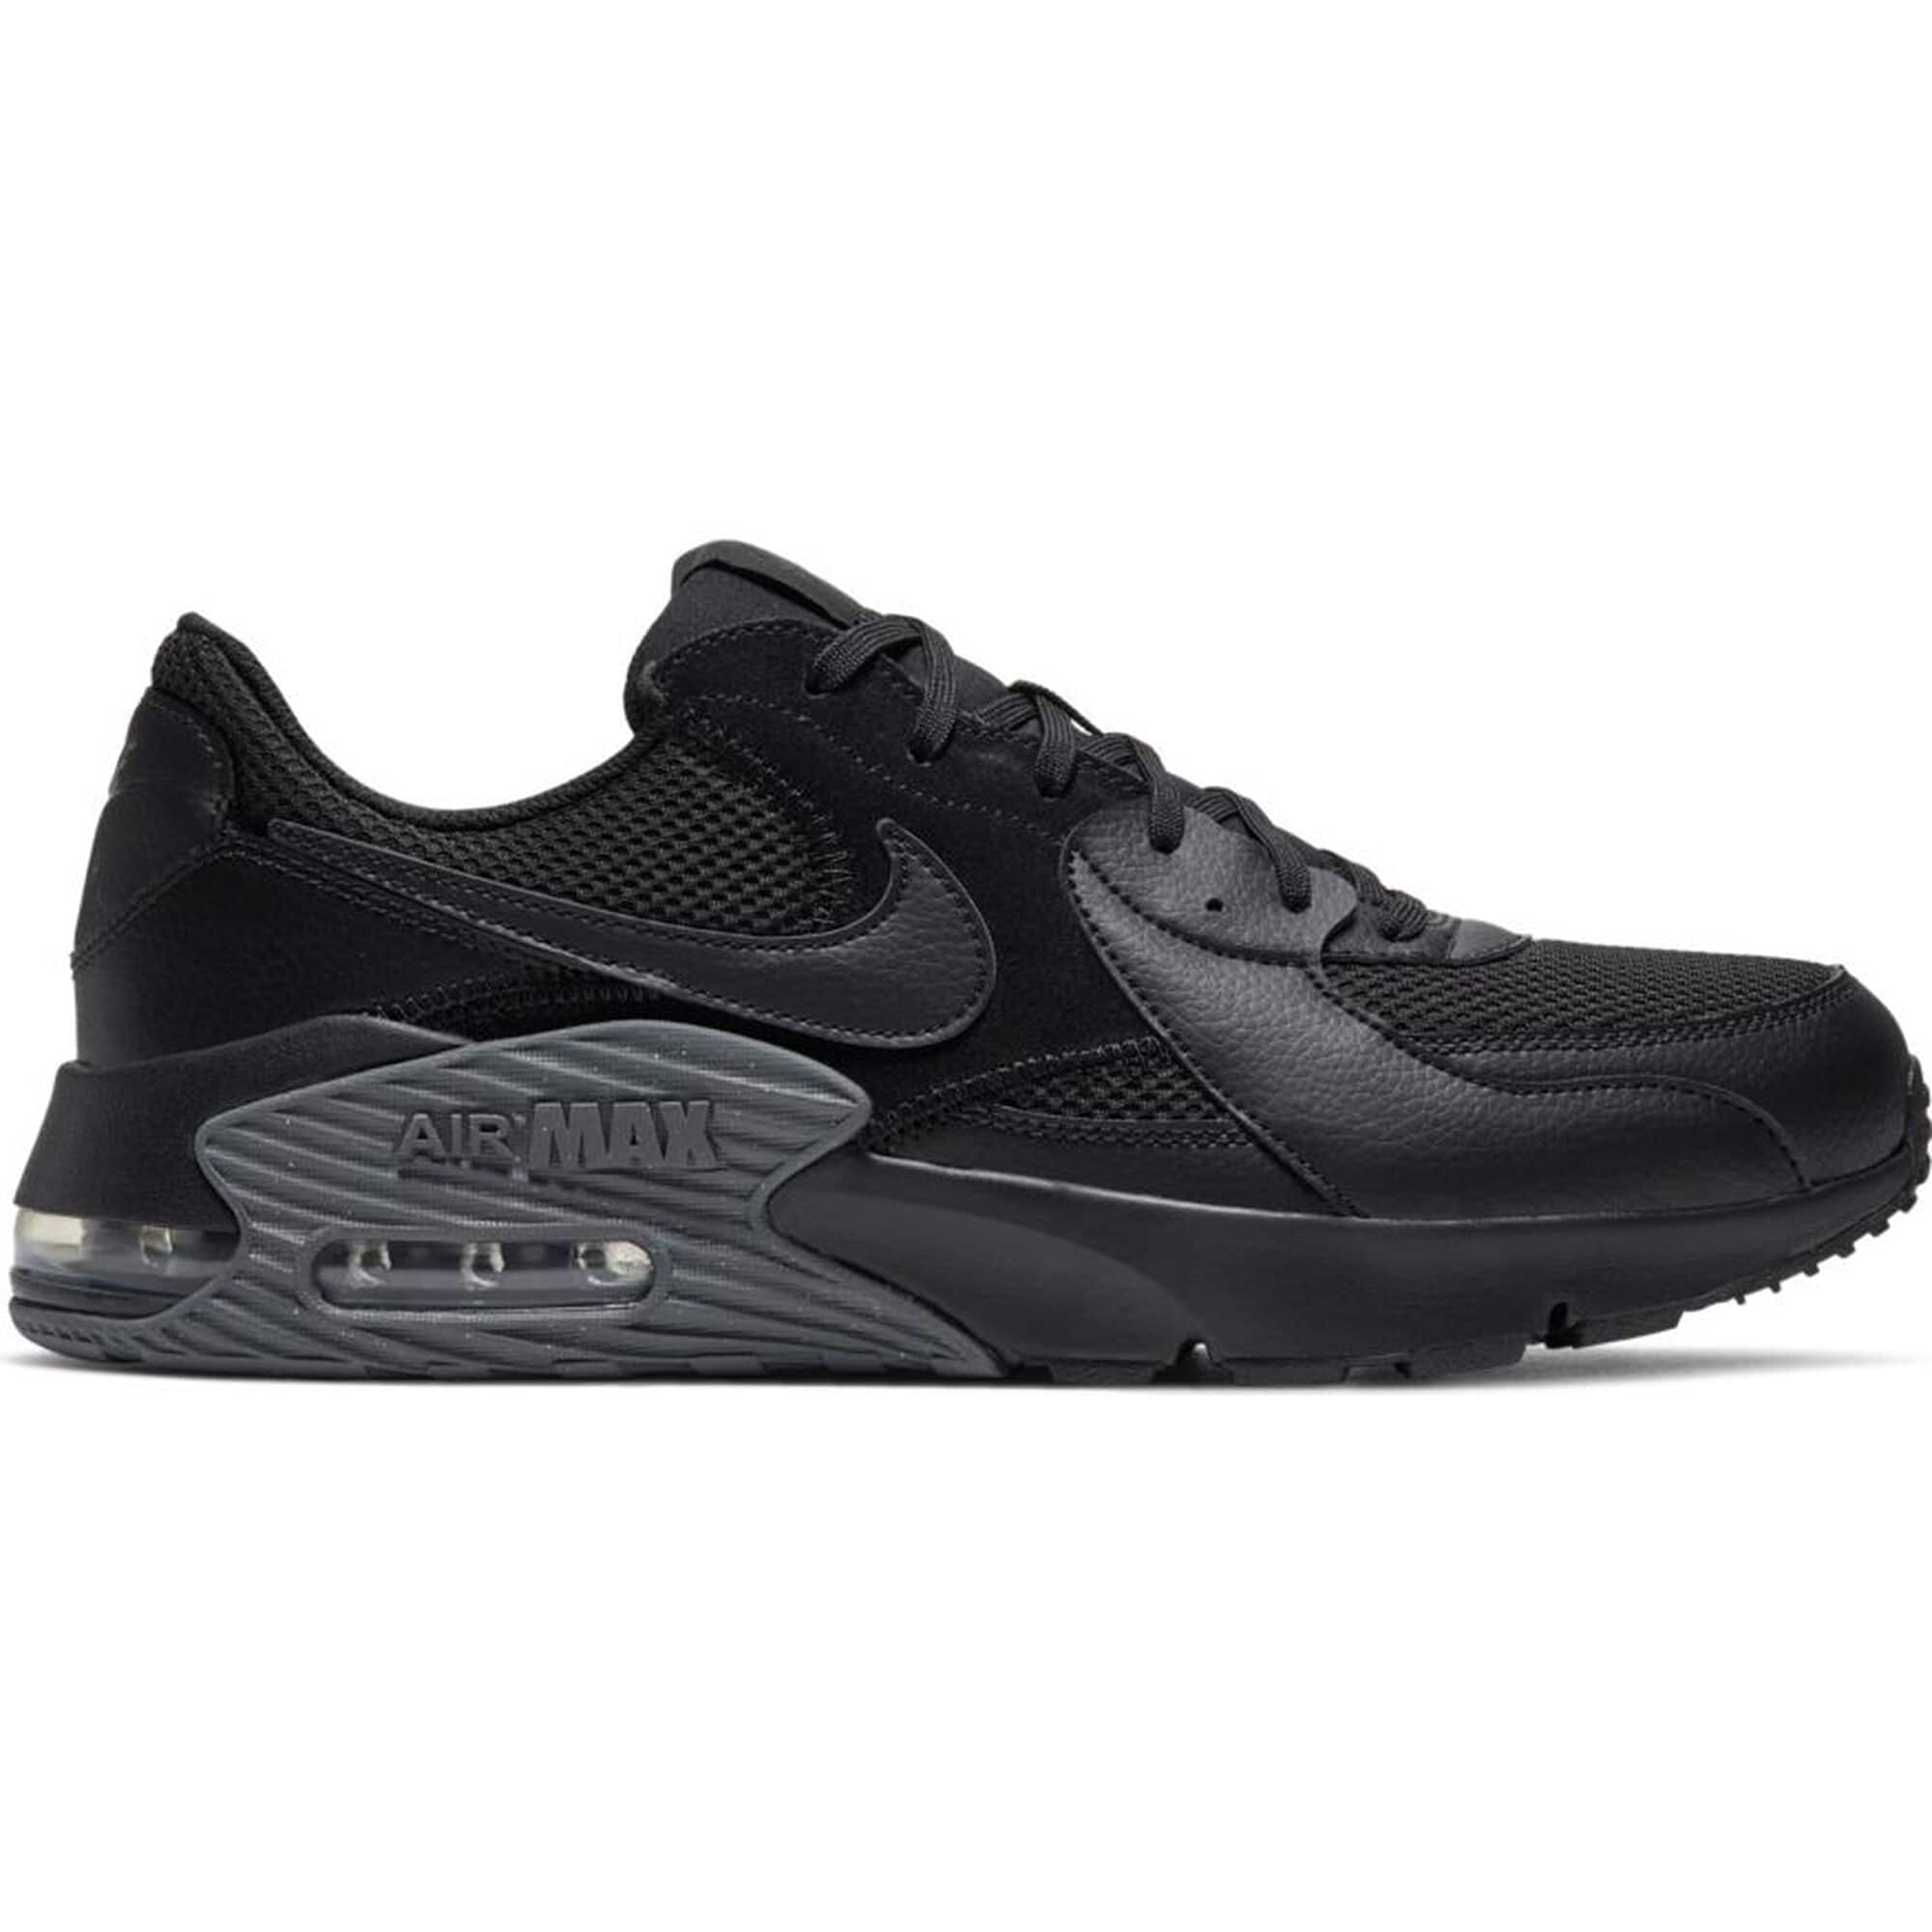 Nike Air Max Excee Shoe $55.00 + Free Shipping